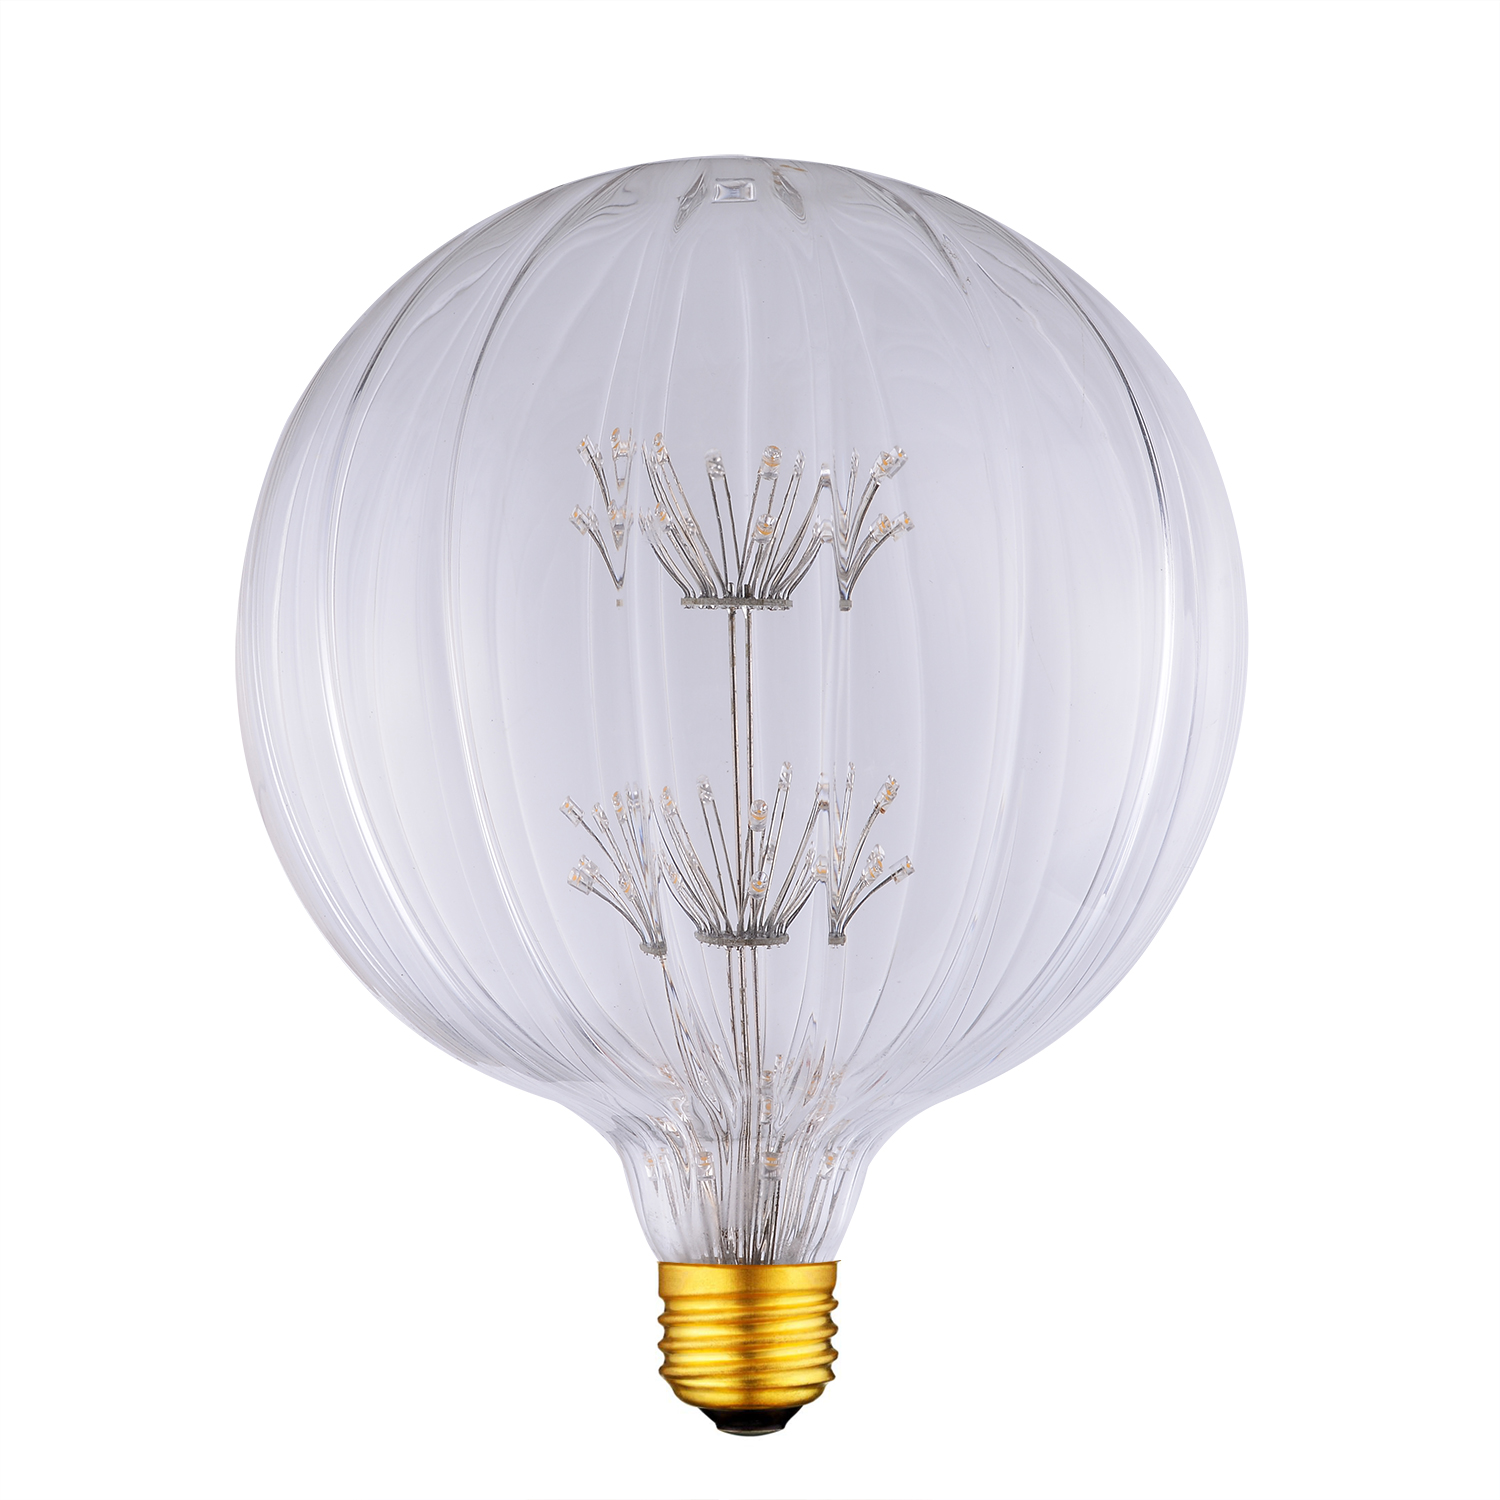 G150 antique light globes LED large edison bulb